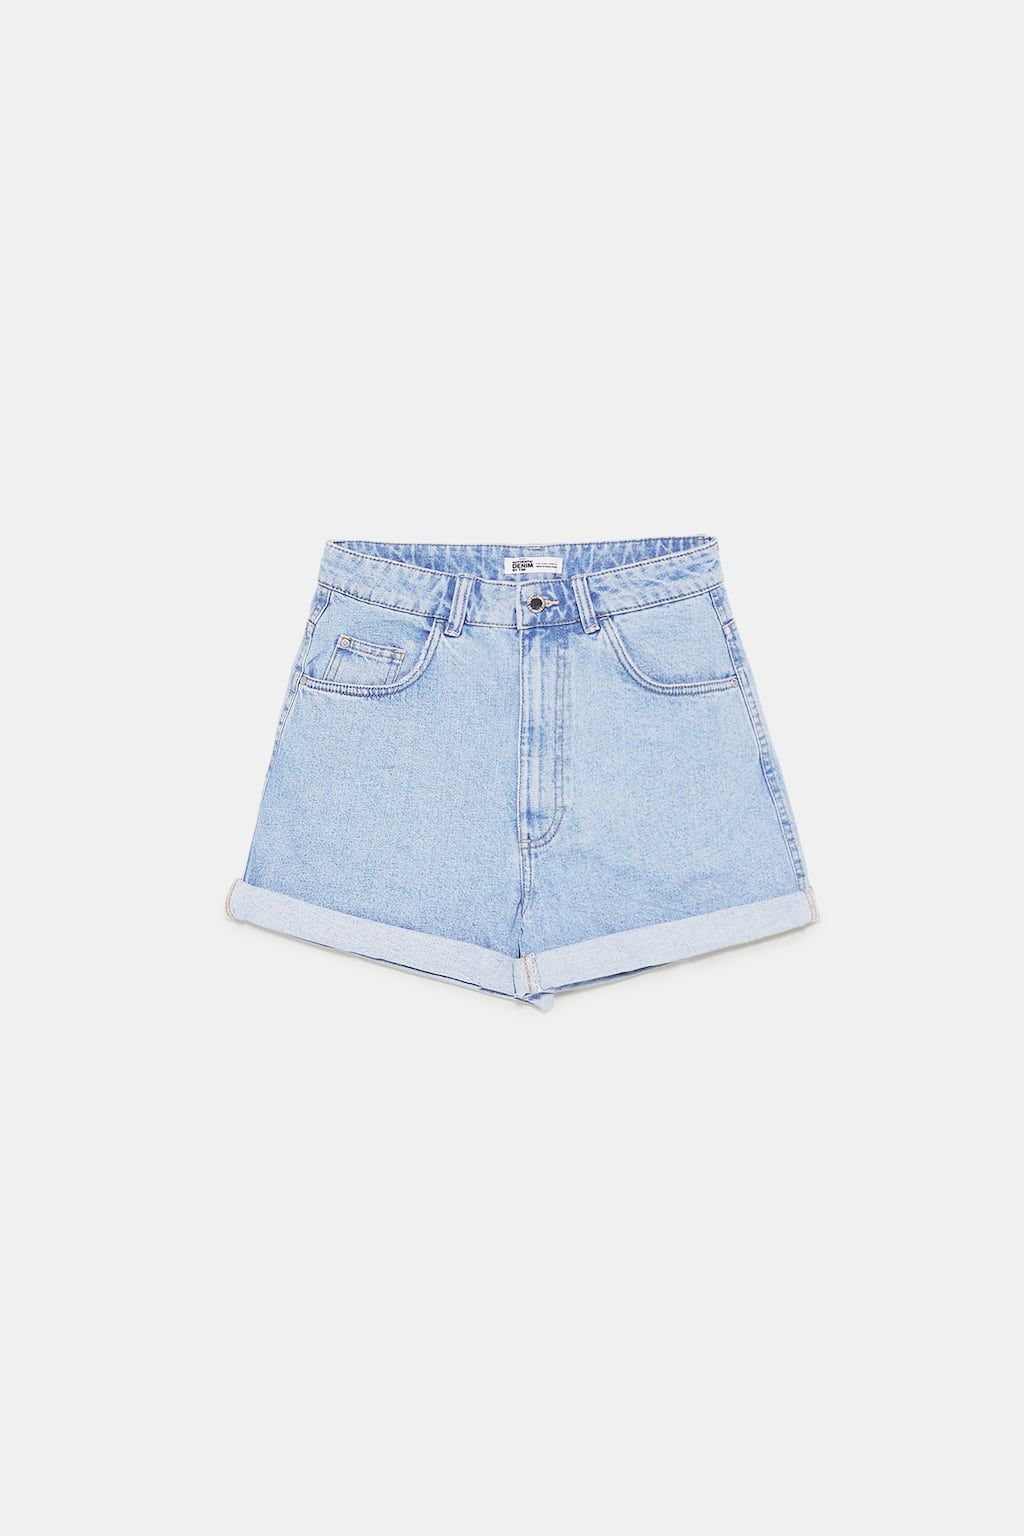 7afad8a9 Image 8 of MOM-FIT BERMUDA SHORTS from Zara | Style in 2019 ...